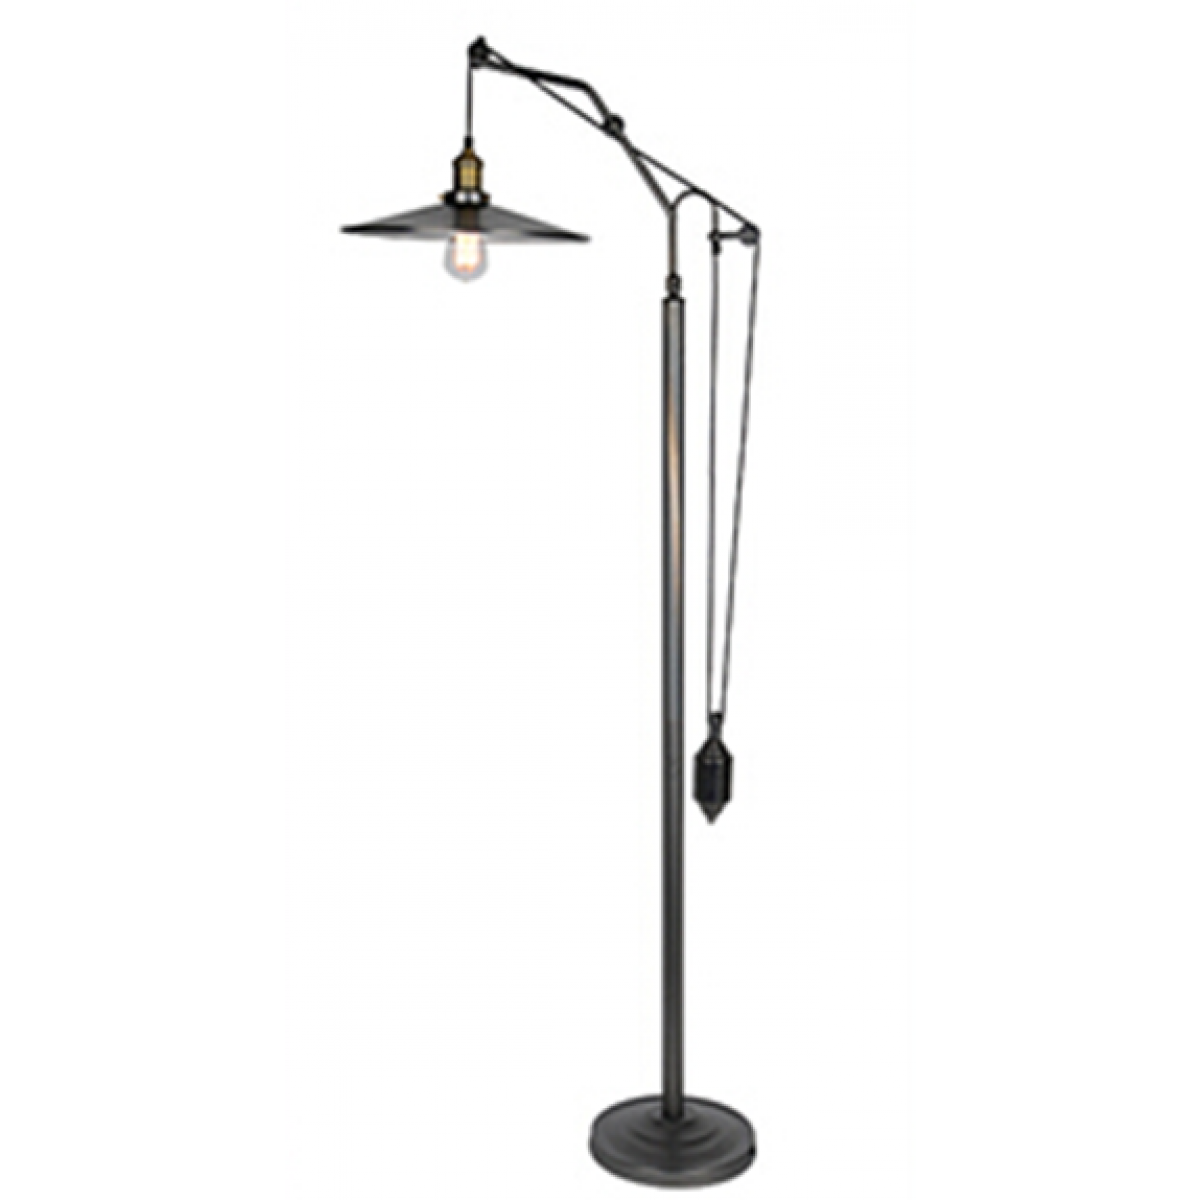 Restoration Hardware Floor Lamps >> Table Lamp For Hotel And Hospitality American Restoration Hardware Style Made In China Lighting Factory Coart